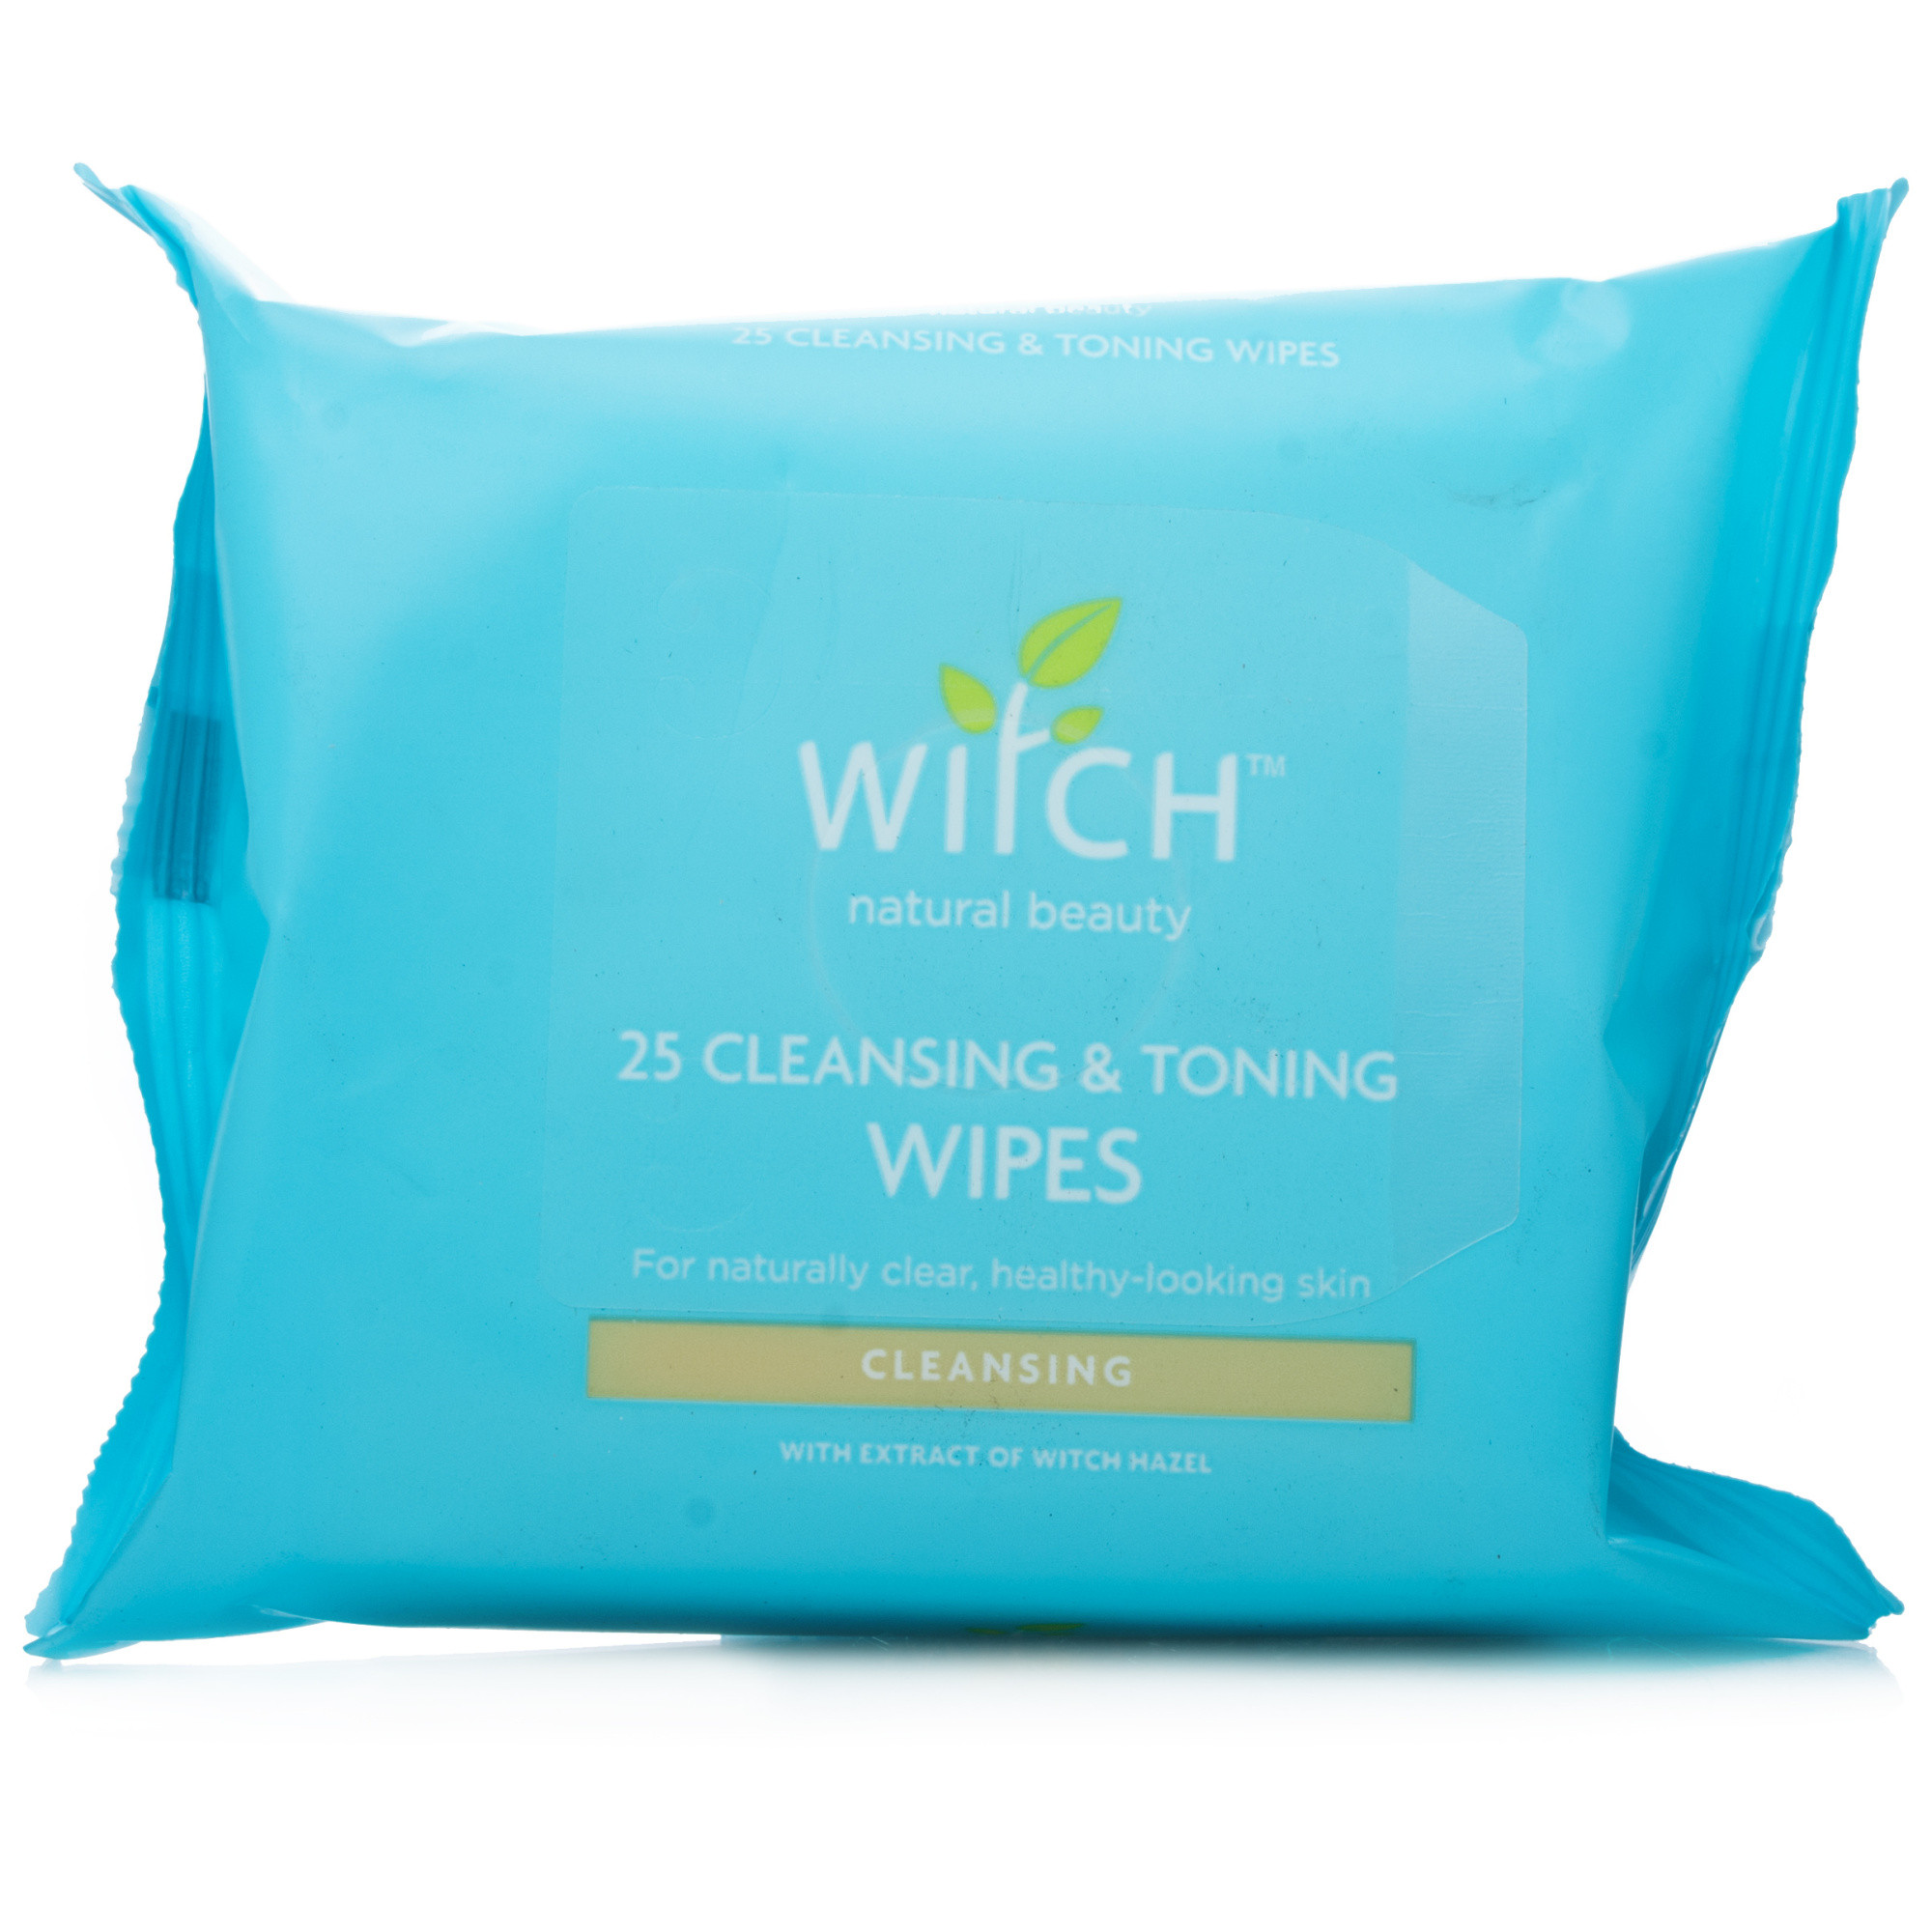 Witch Cleansing & Toning Wipes